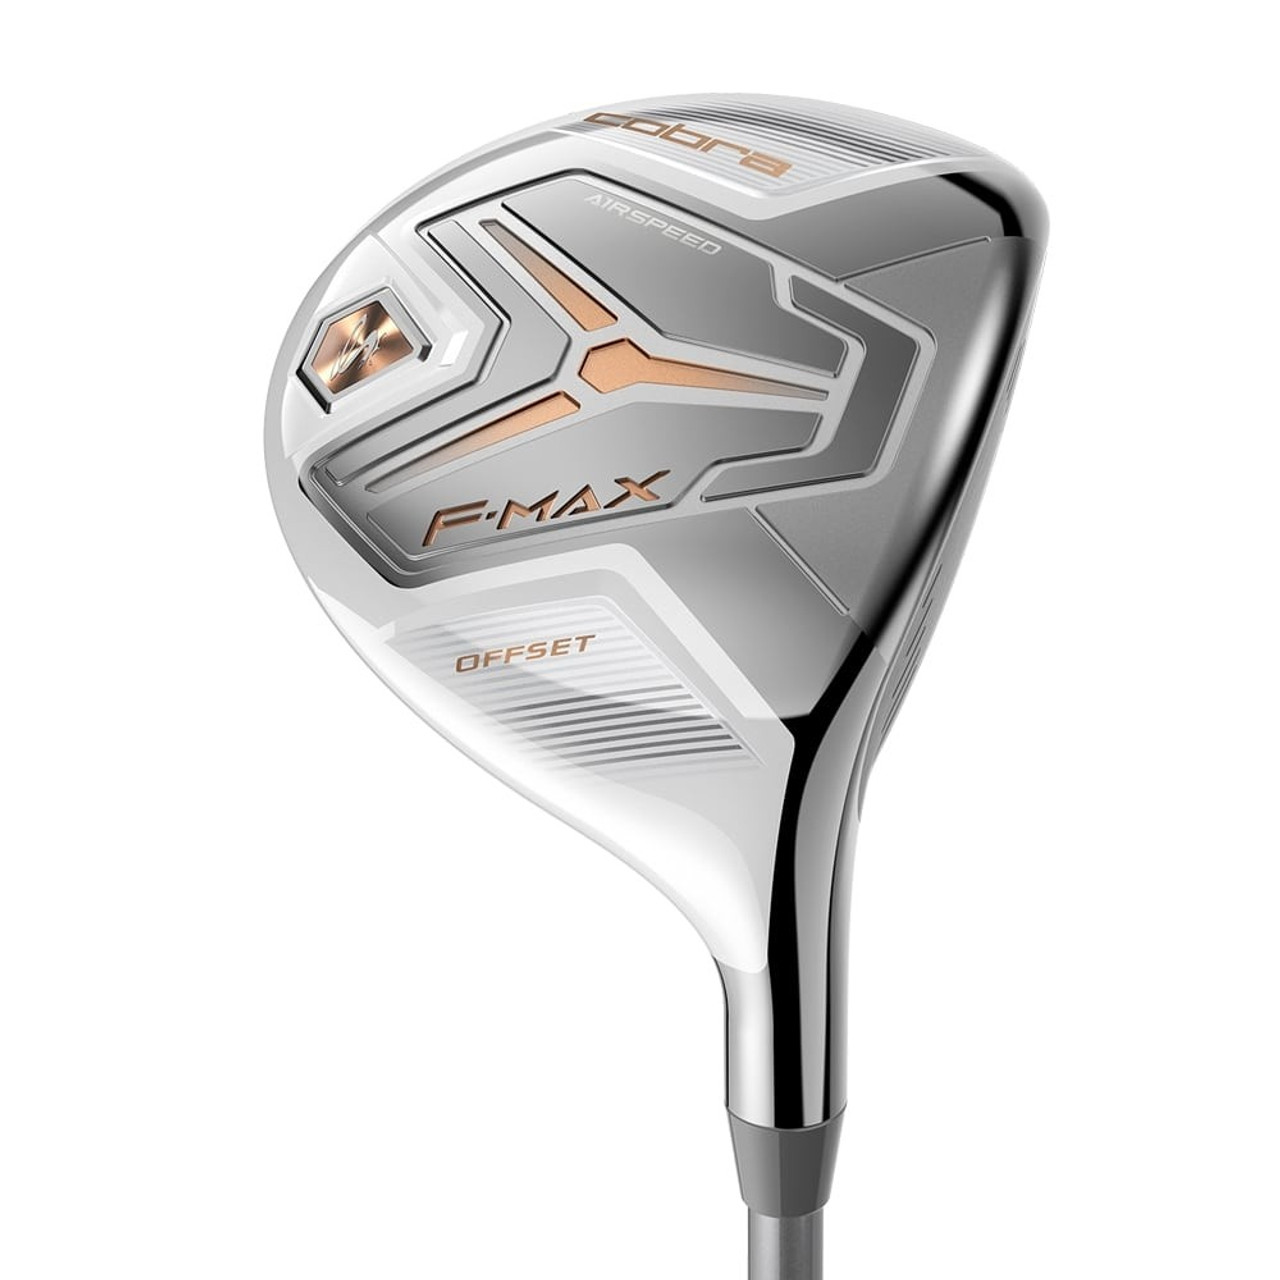 Cobra F-Max Airspeed Womens Complete Sets - White / Copper